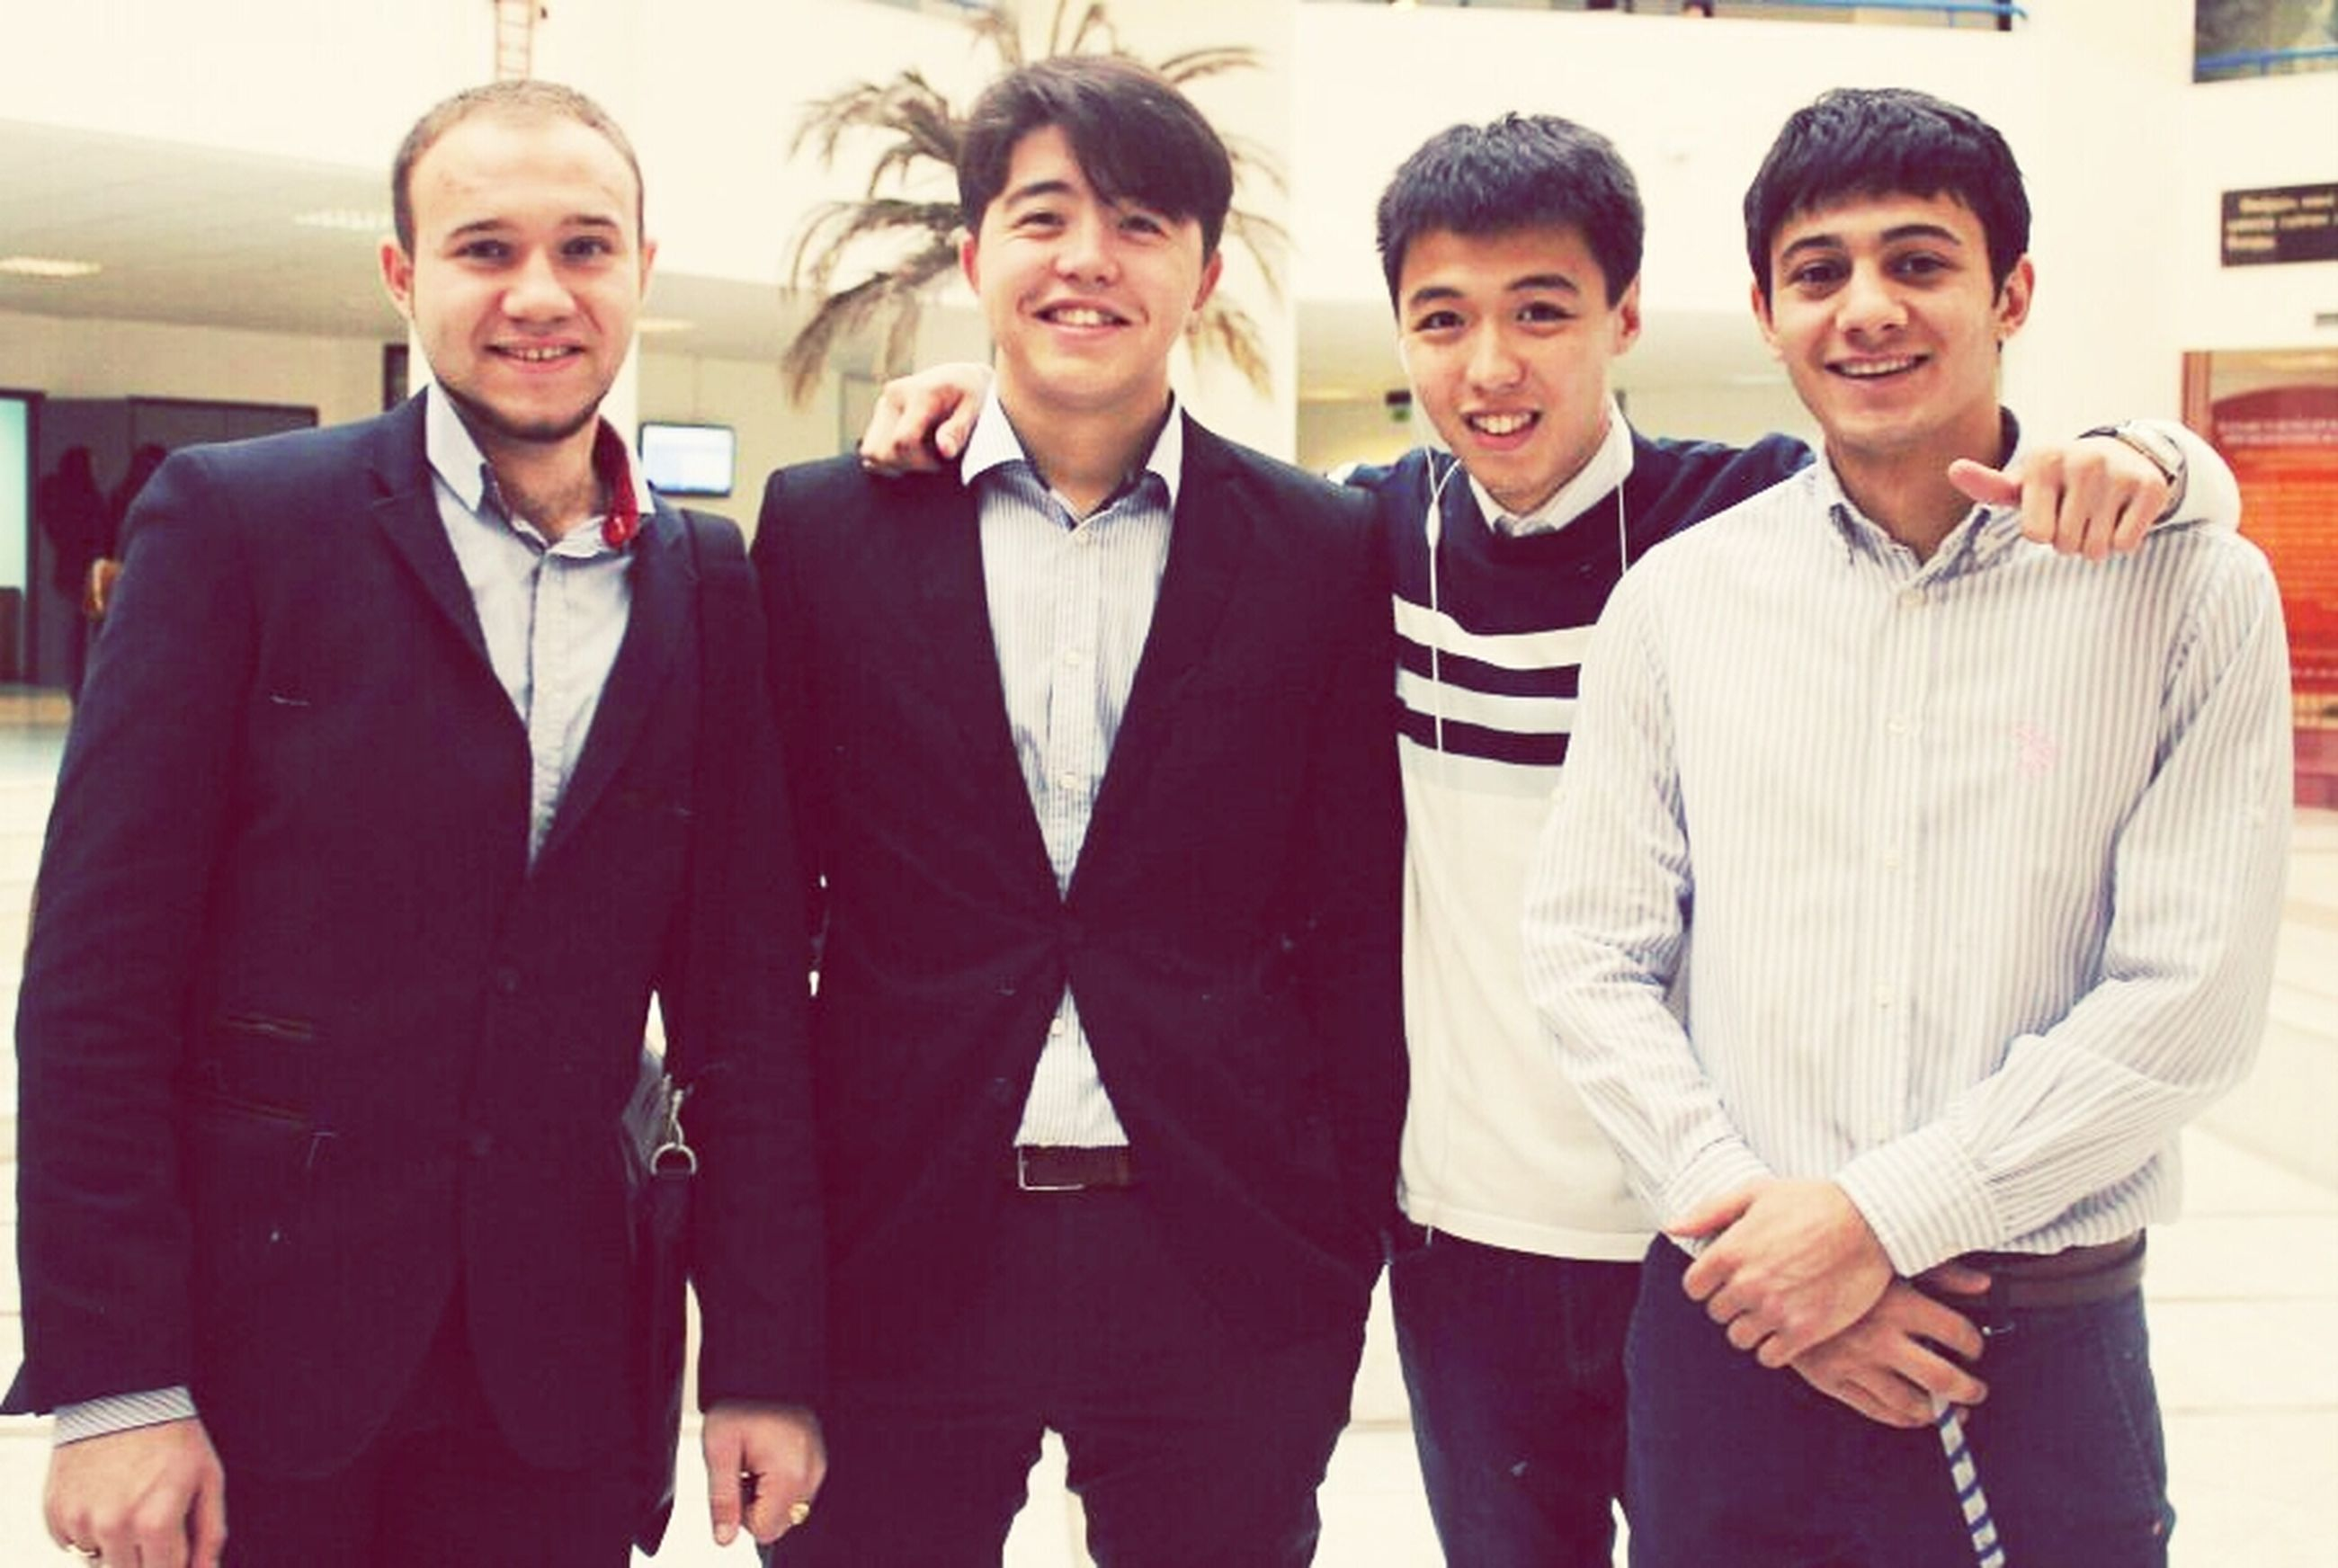 togetherness, lifestyles, young men, leisure activity, bonding, front view, portrait, casual clothing, friendship, standing, person, looking at camera, young adult, love, indoors, smiling, happiness, men